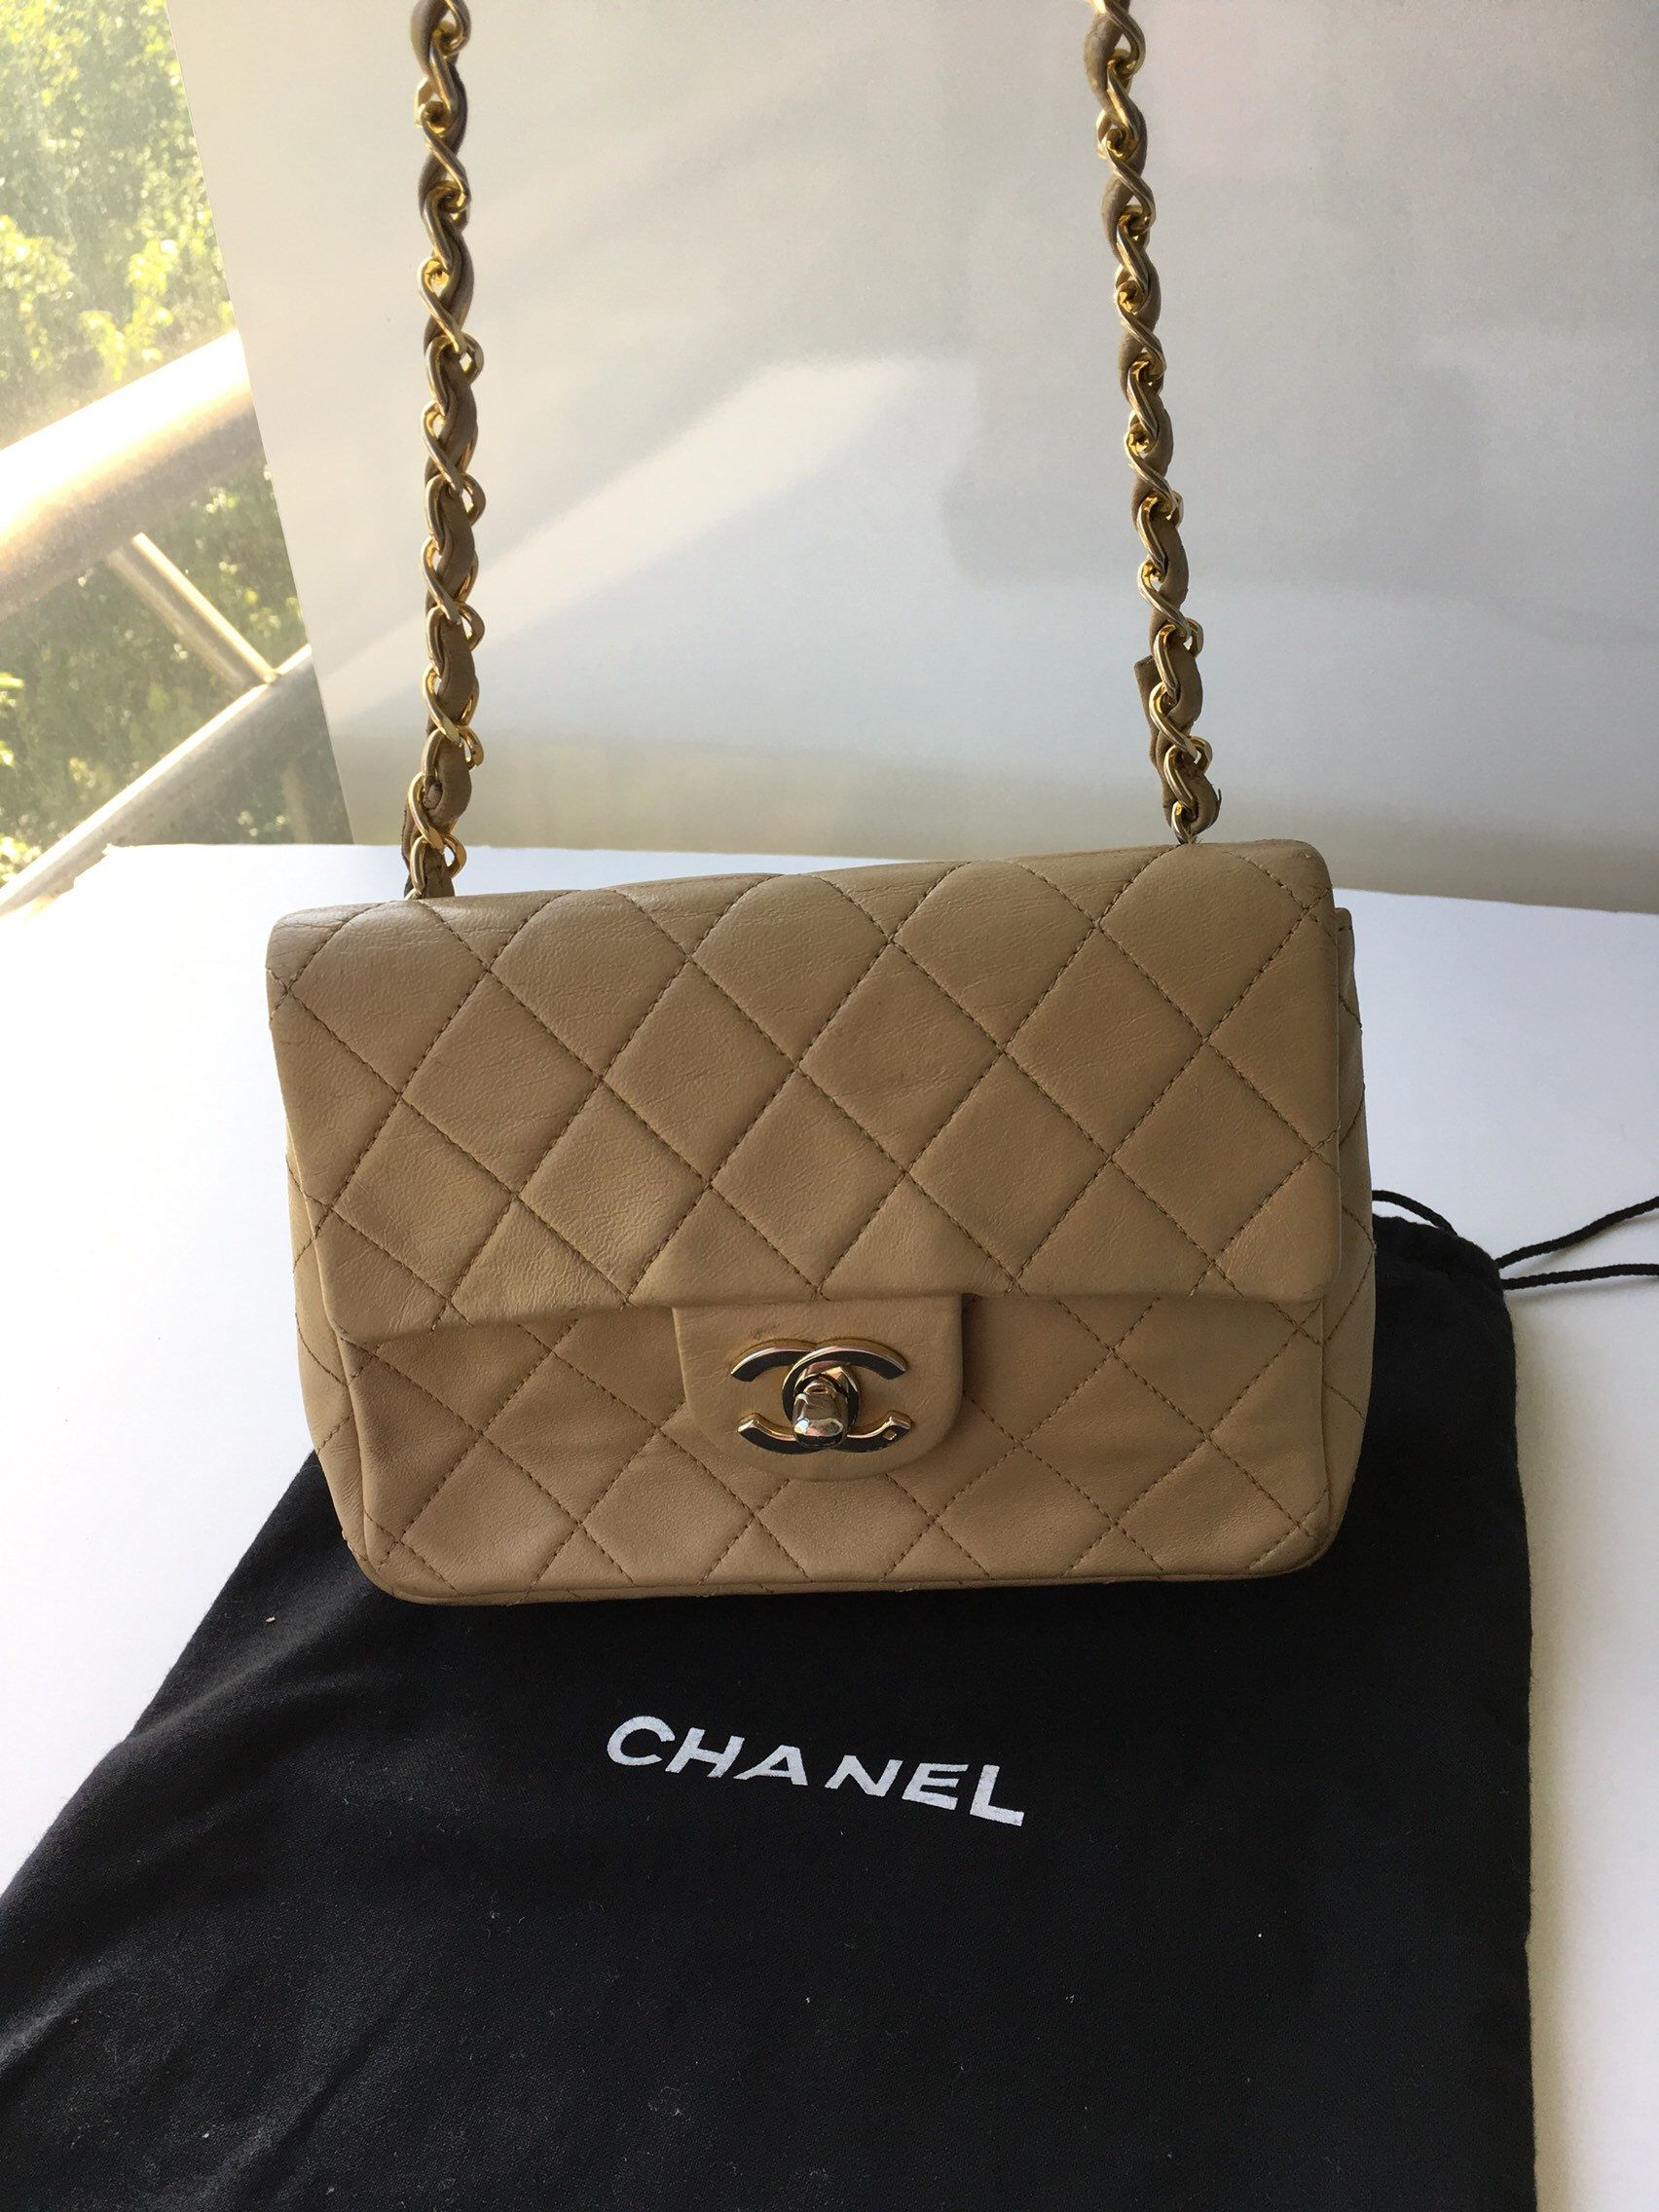 450f52cda08b43 Chanel Vintage Authentic Beige Lambskin Quilted Mini Square Classic Flap Bag  Mini Matelasse Beige Chain Shoulder Bag Flap Crossbody #chanel90sbag ...